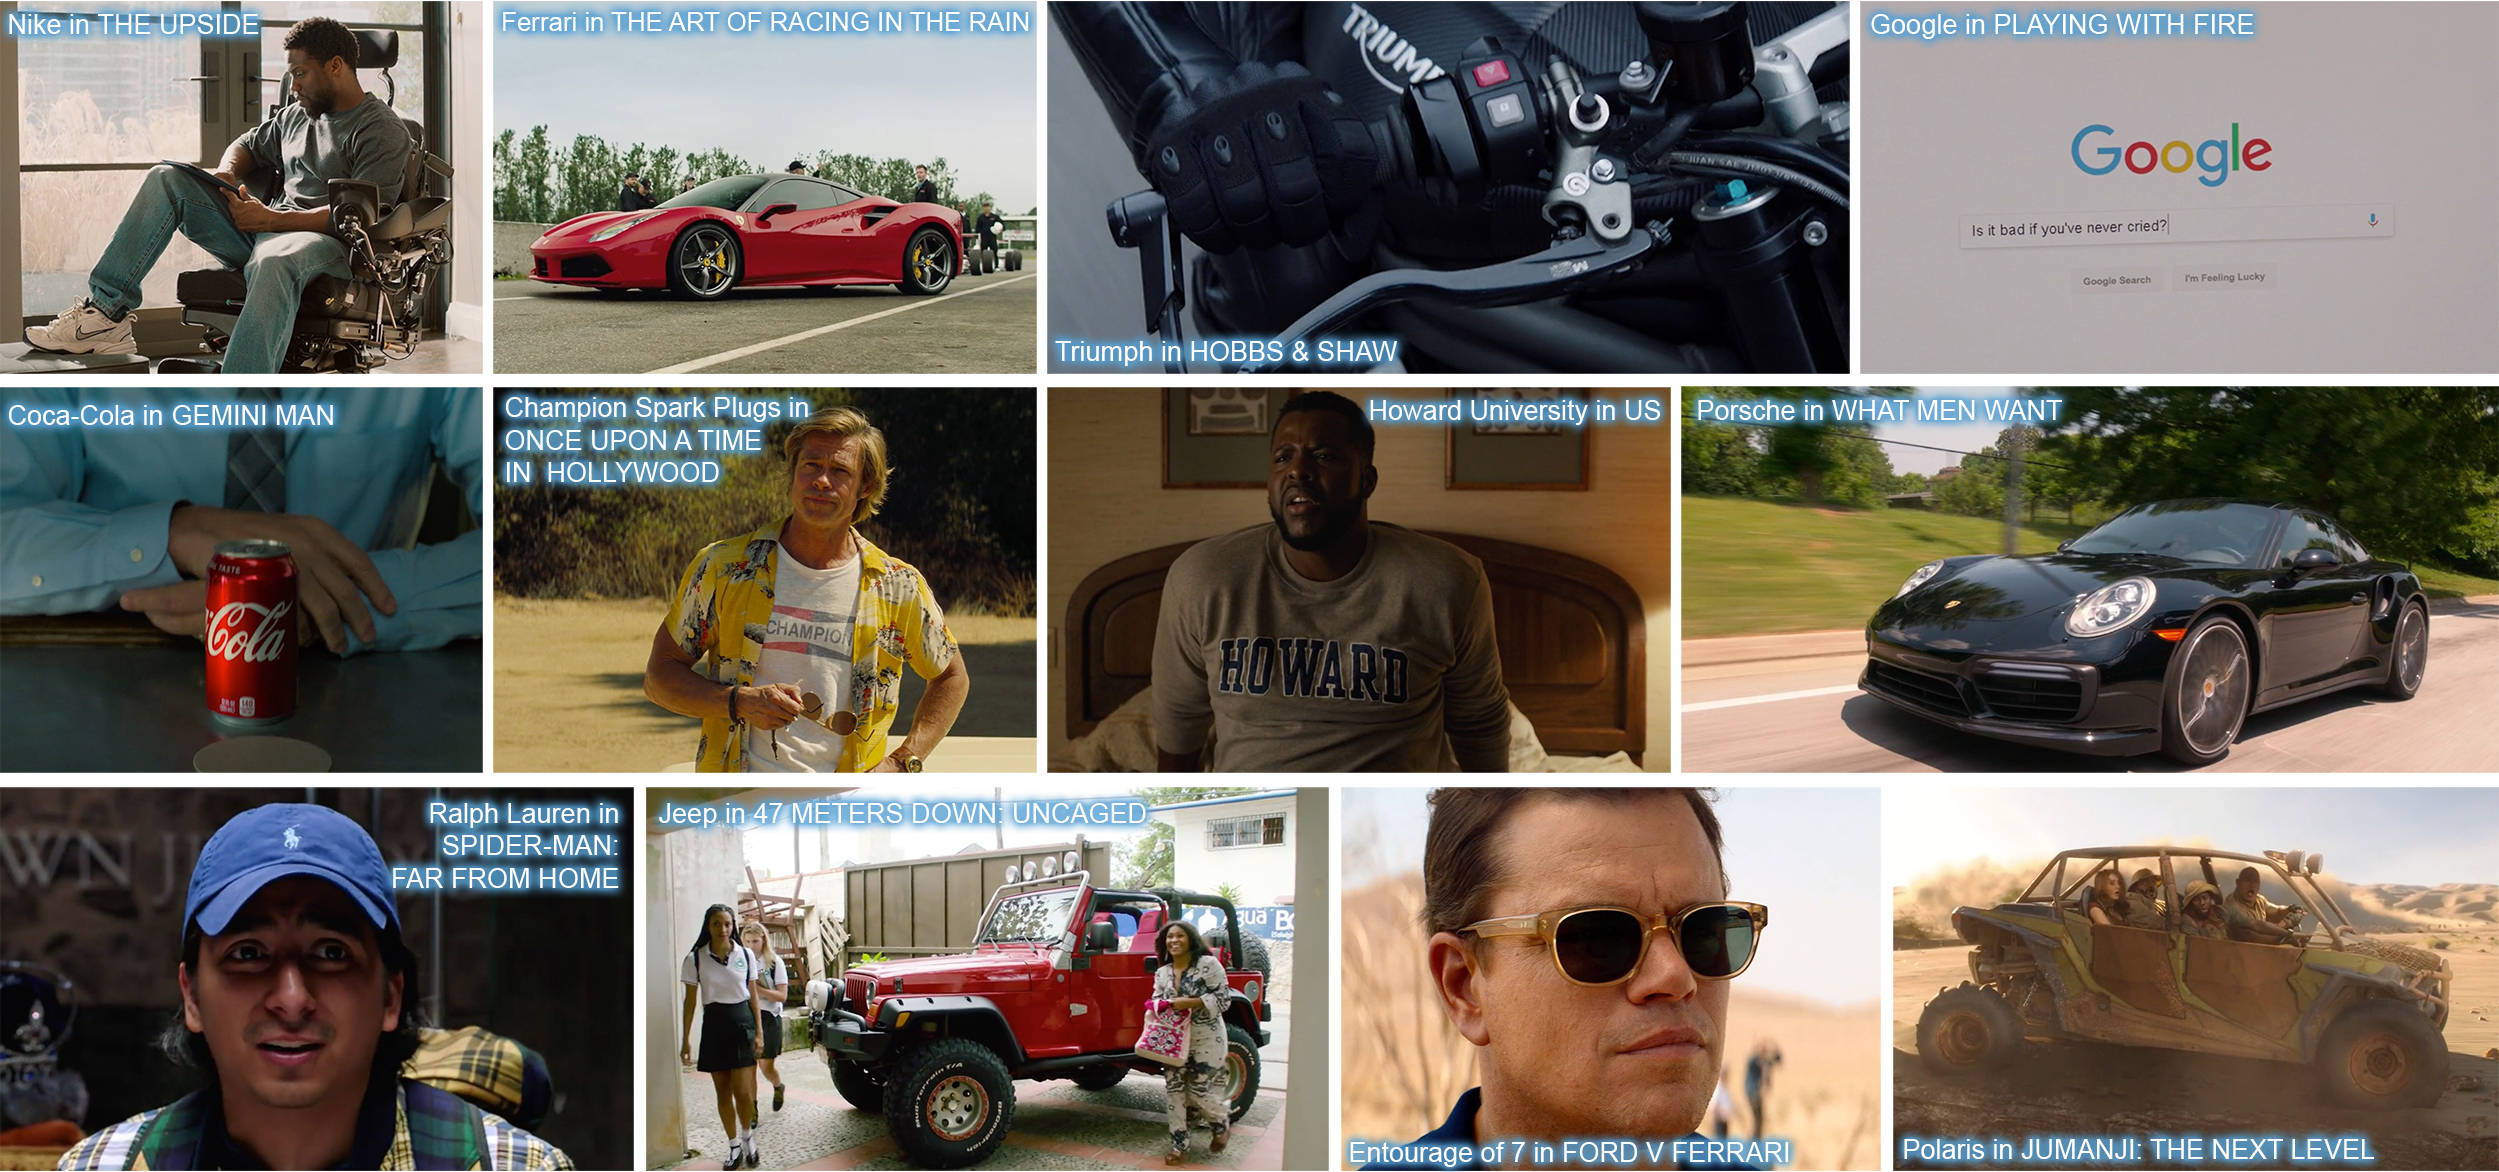 concave brand tracking product placement top 100 brands in 2019 movies top 10 entertainment marketing analysis metrics measurement nike the upside Ferrari the art of racing in the rain triumph hobbs and shaw hobbs & shaw google playing with fire coca cola coca-cola gemini man champion spark plugs howard university porsche what men want ralph lauren spider-man far from jeep 47 meters down uncaged Entourage of 7 ford V ferrari polaris jumanji the next level